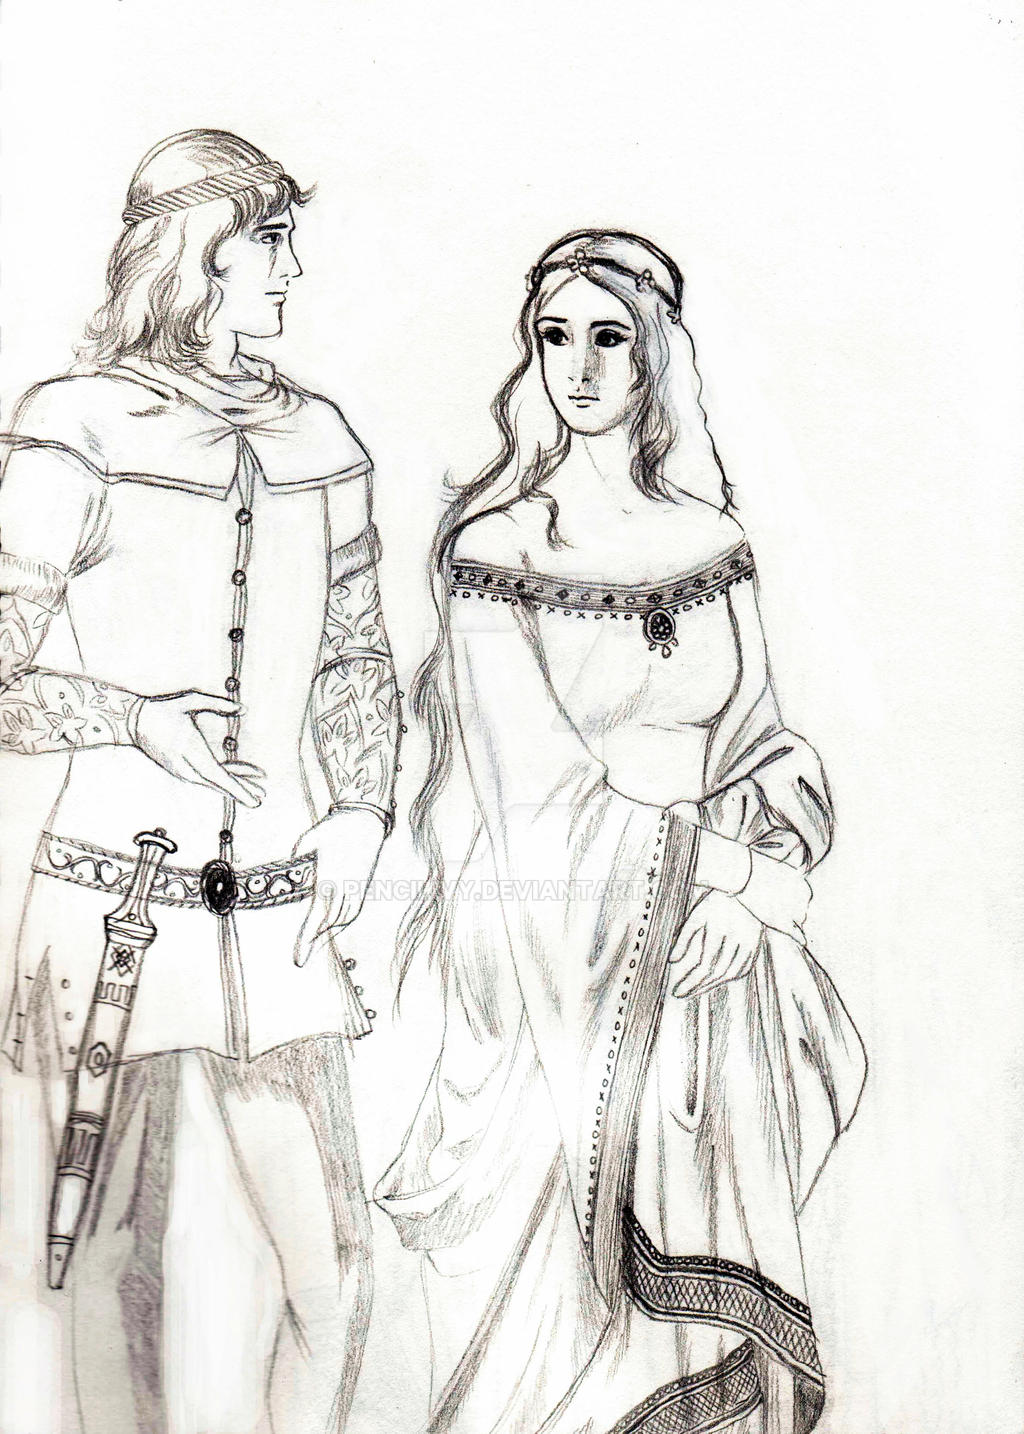 14th century Knight and Noble Maiden by Pencilivy